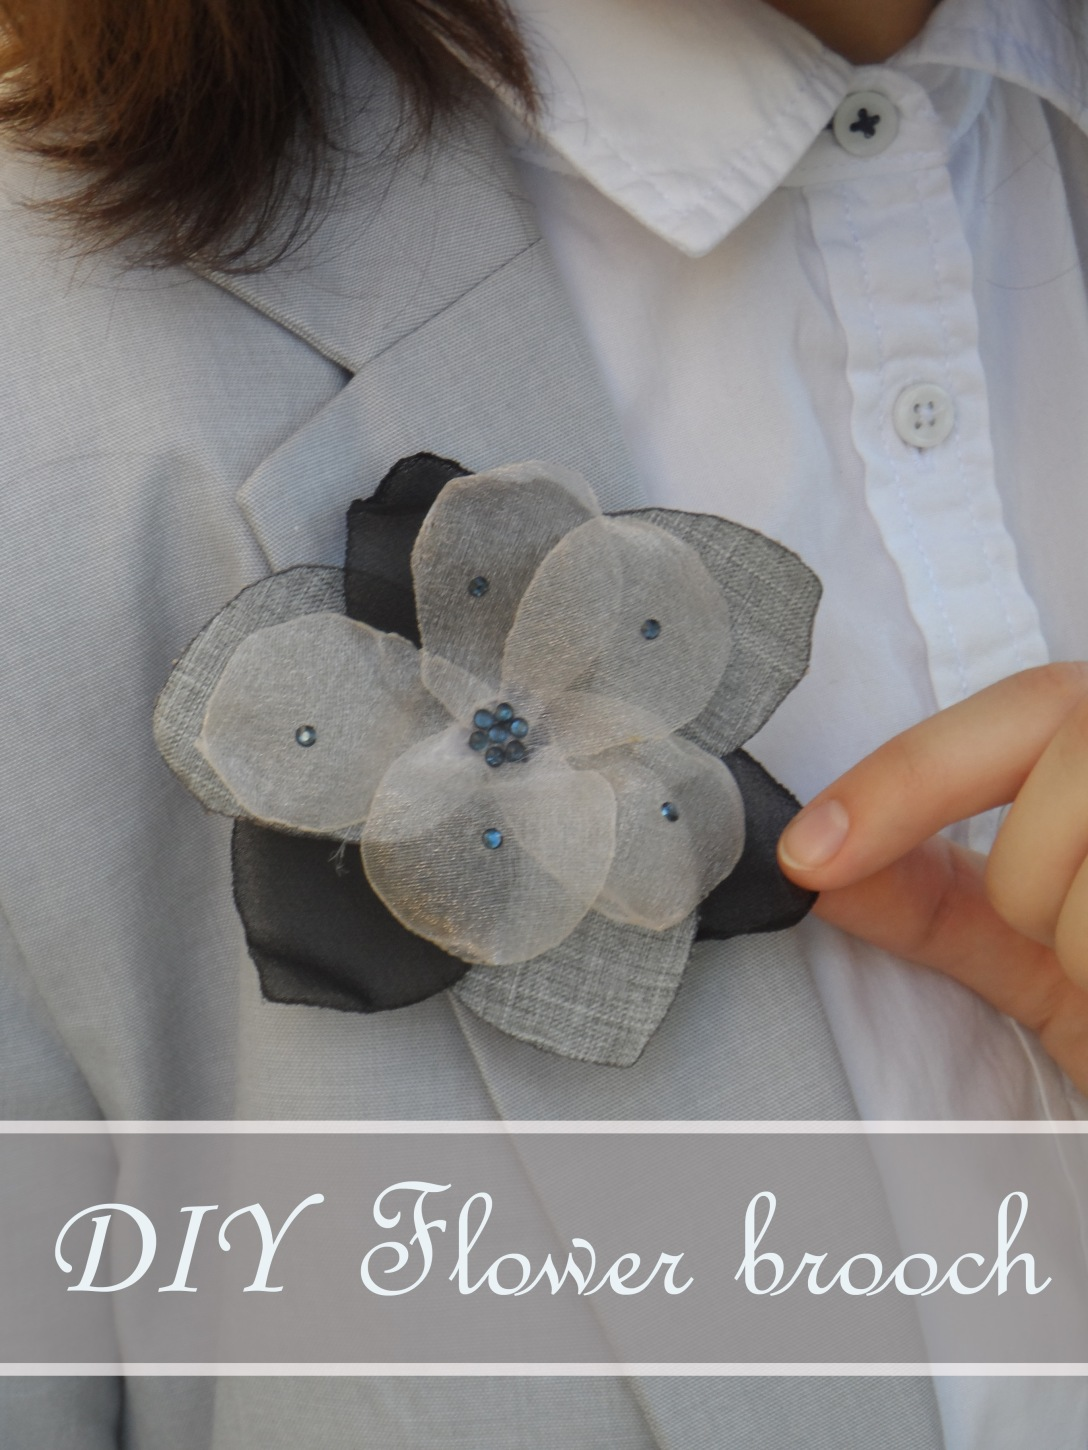 Sewing business casual - flower brooch